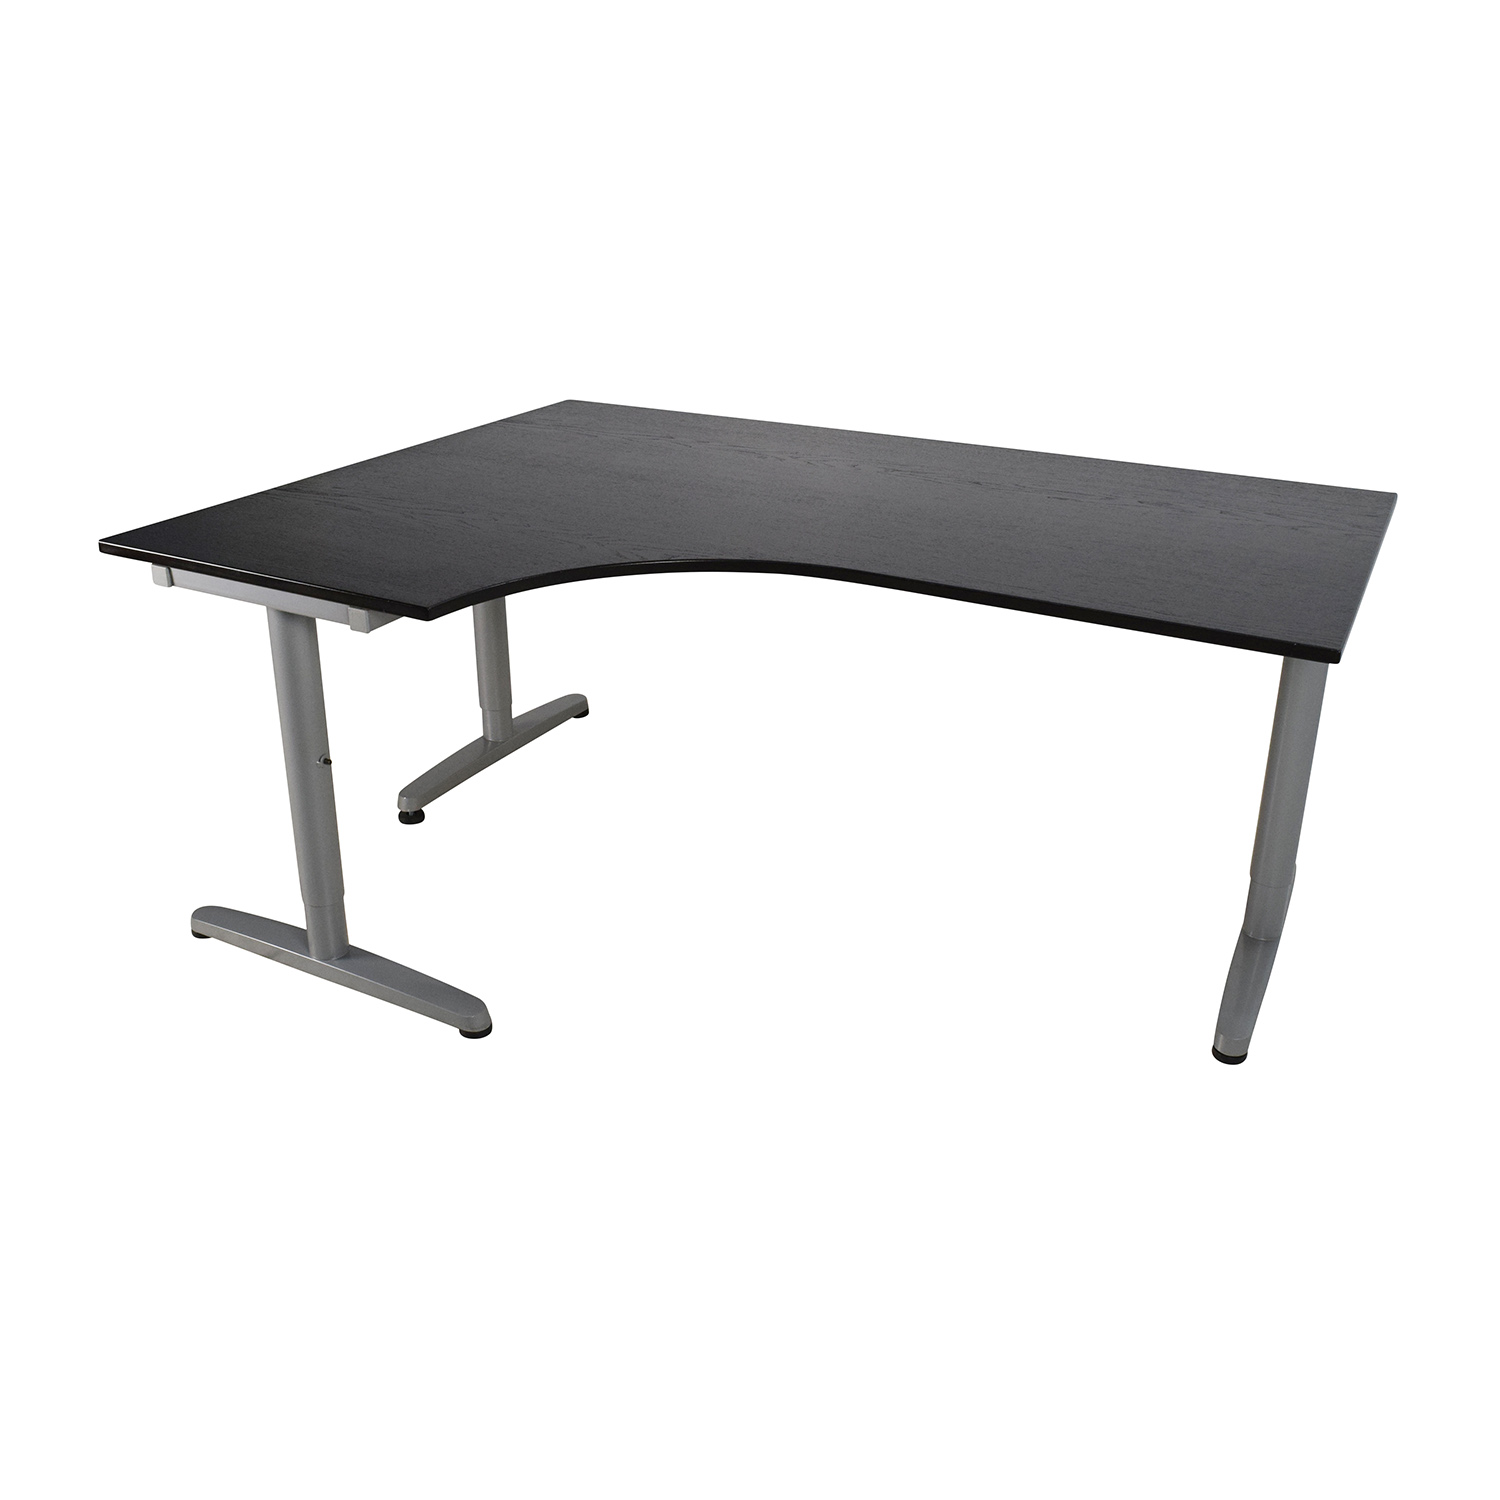 68 off ikea ikea galant corner desk tables. Black Bedroom Furniture Sets. Home Design Ideas